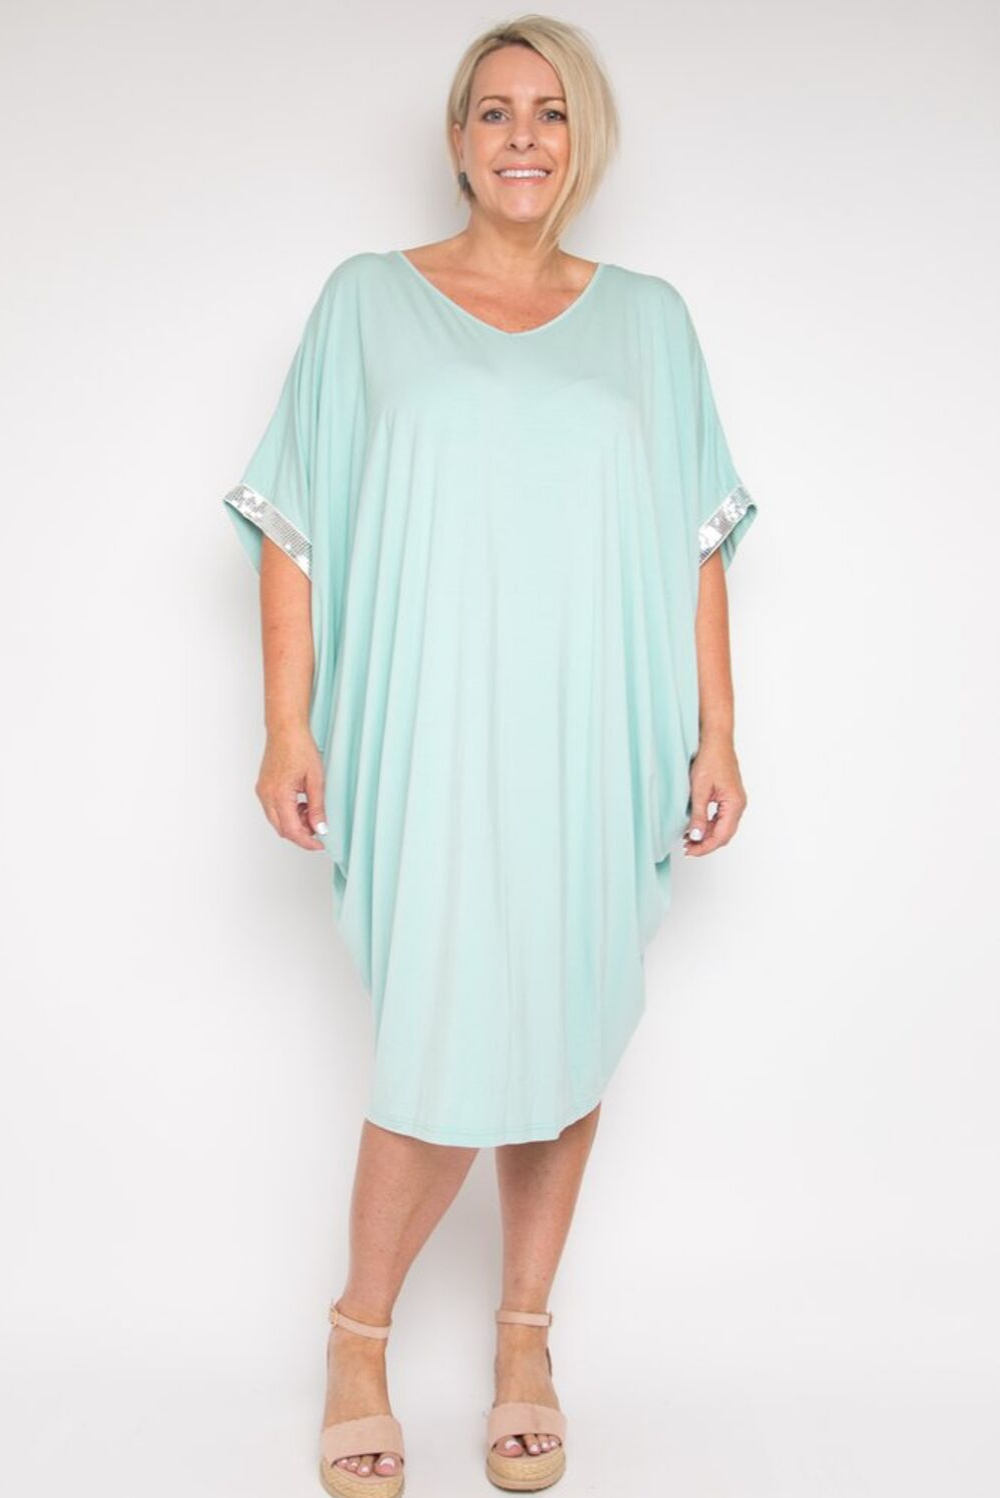 RO Bamboo Sky Sparkle Short Kaftan Dress